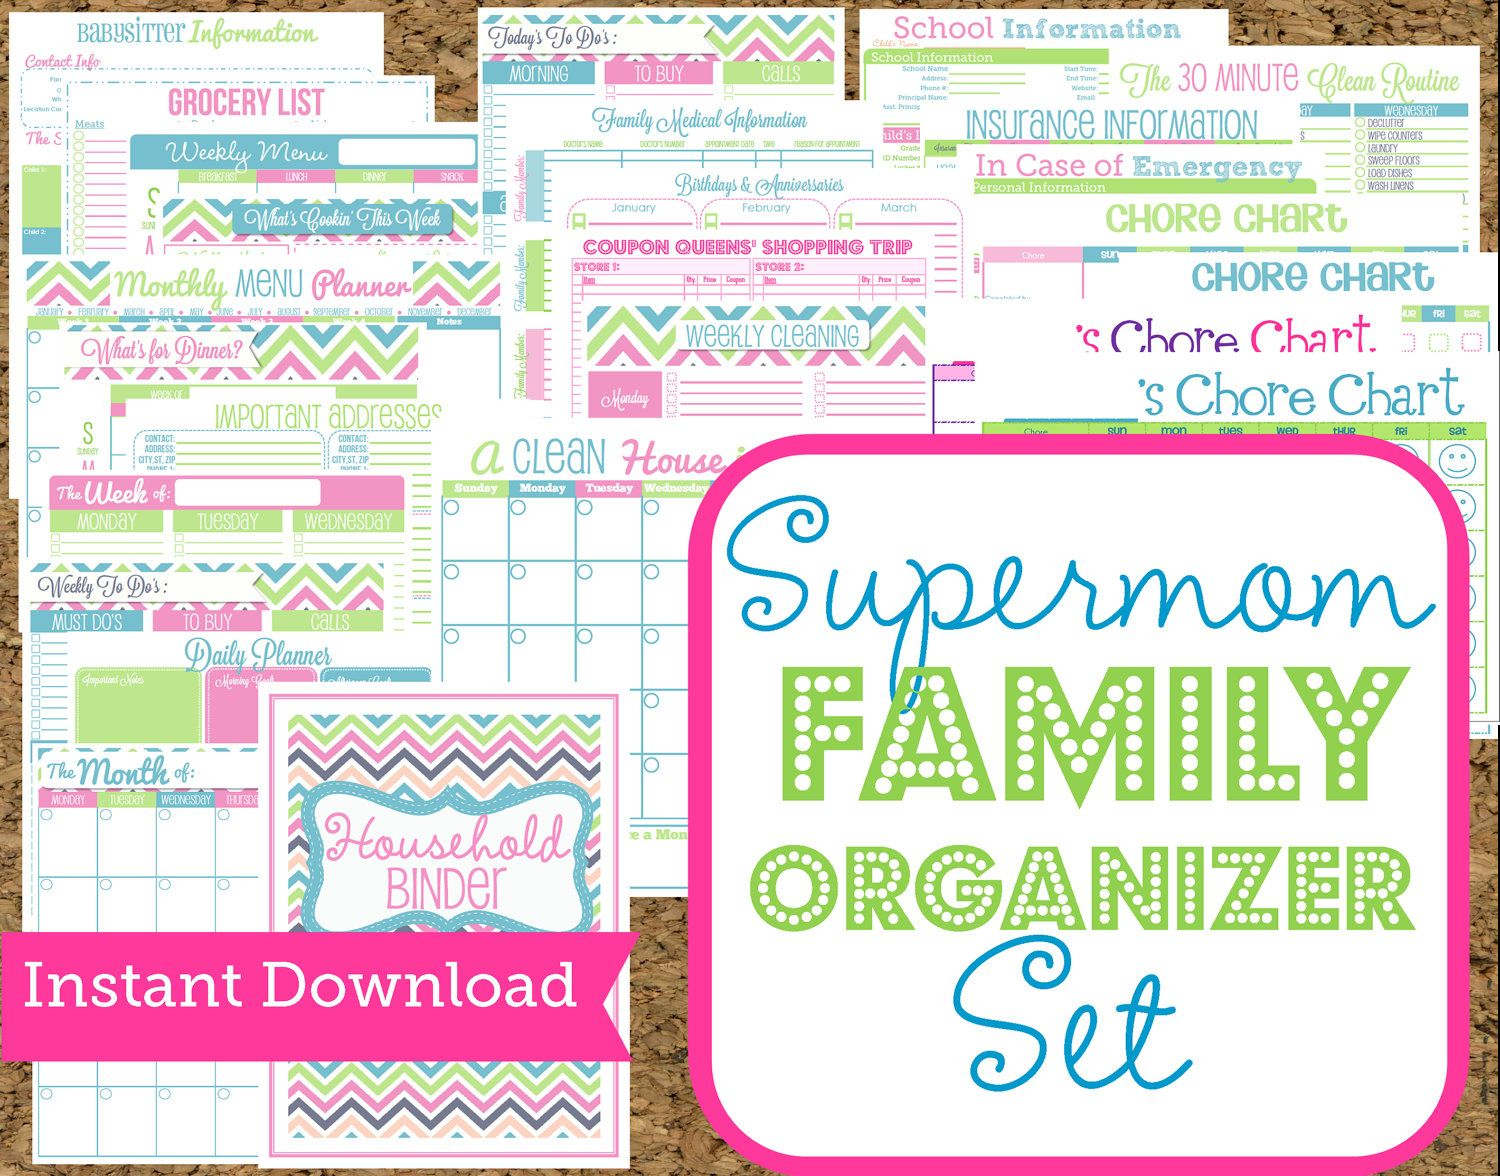 image about Free Printable Home Organization Worksheets identified as Quick Obtain Mother Planners- Residence Company Printables